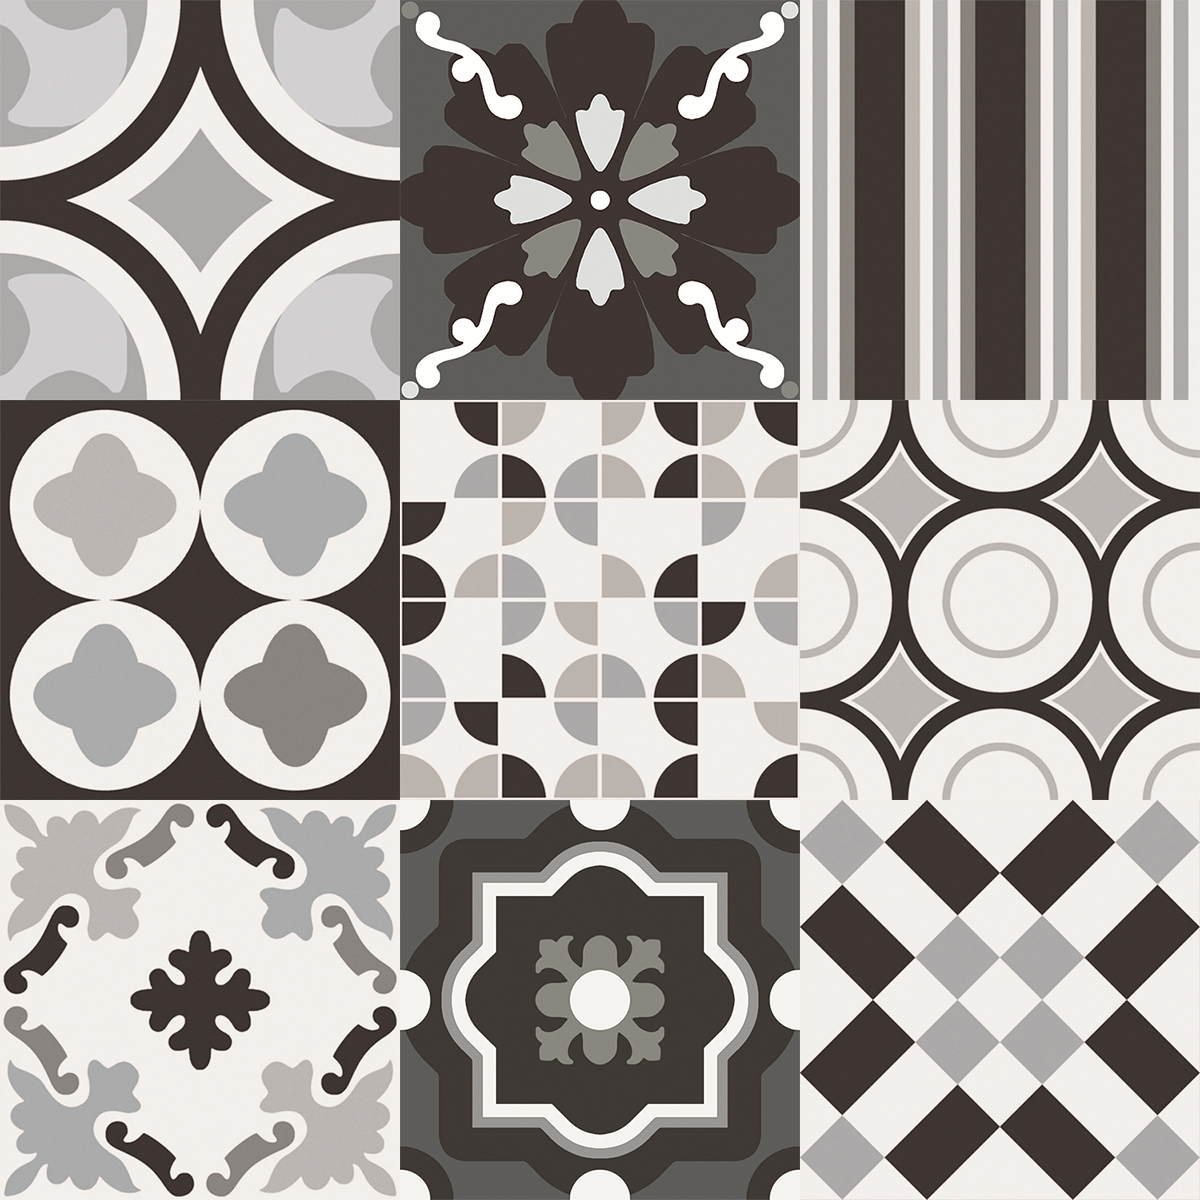 image/catalog/product_series_tiles/2101/combined3.jpg